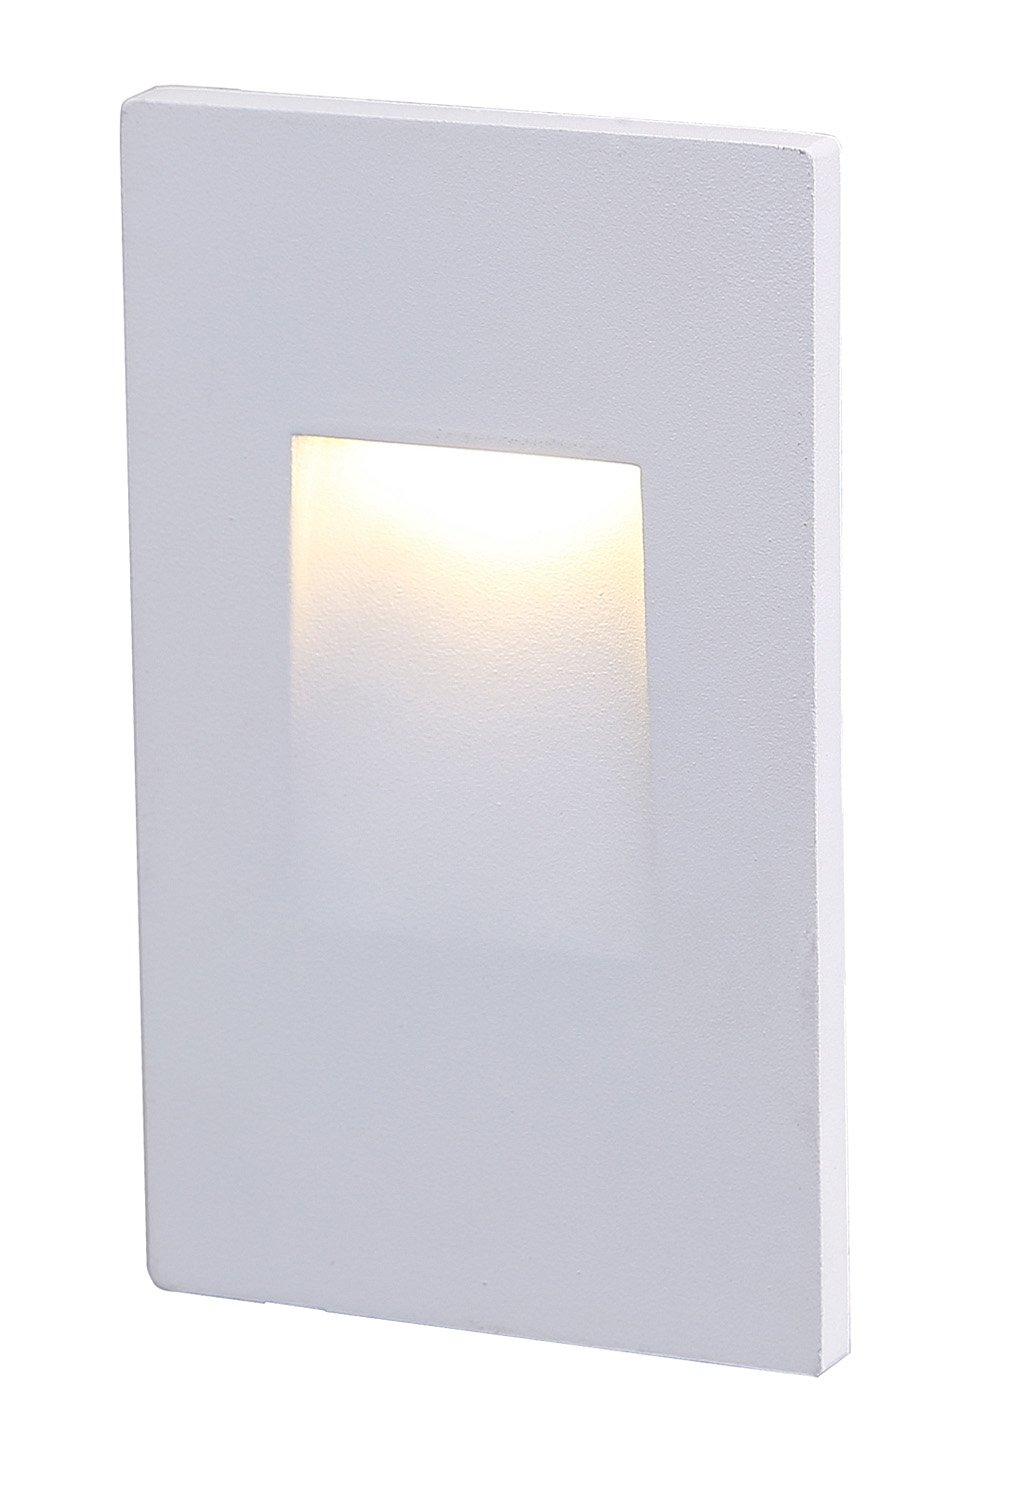 Cloudy Bay CBST004830WH LED indoor stair light